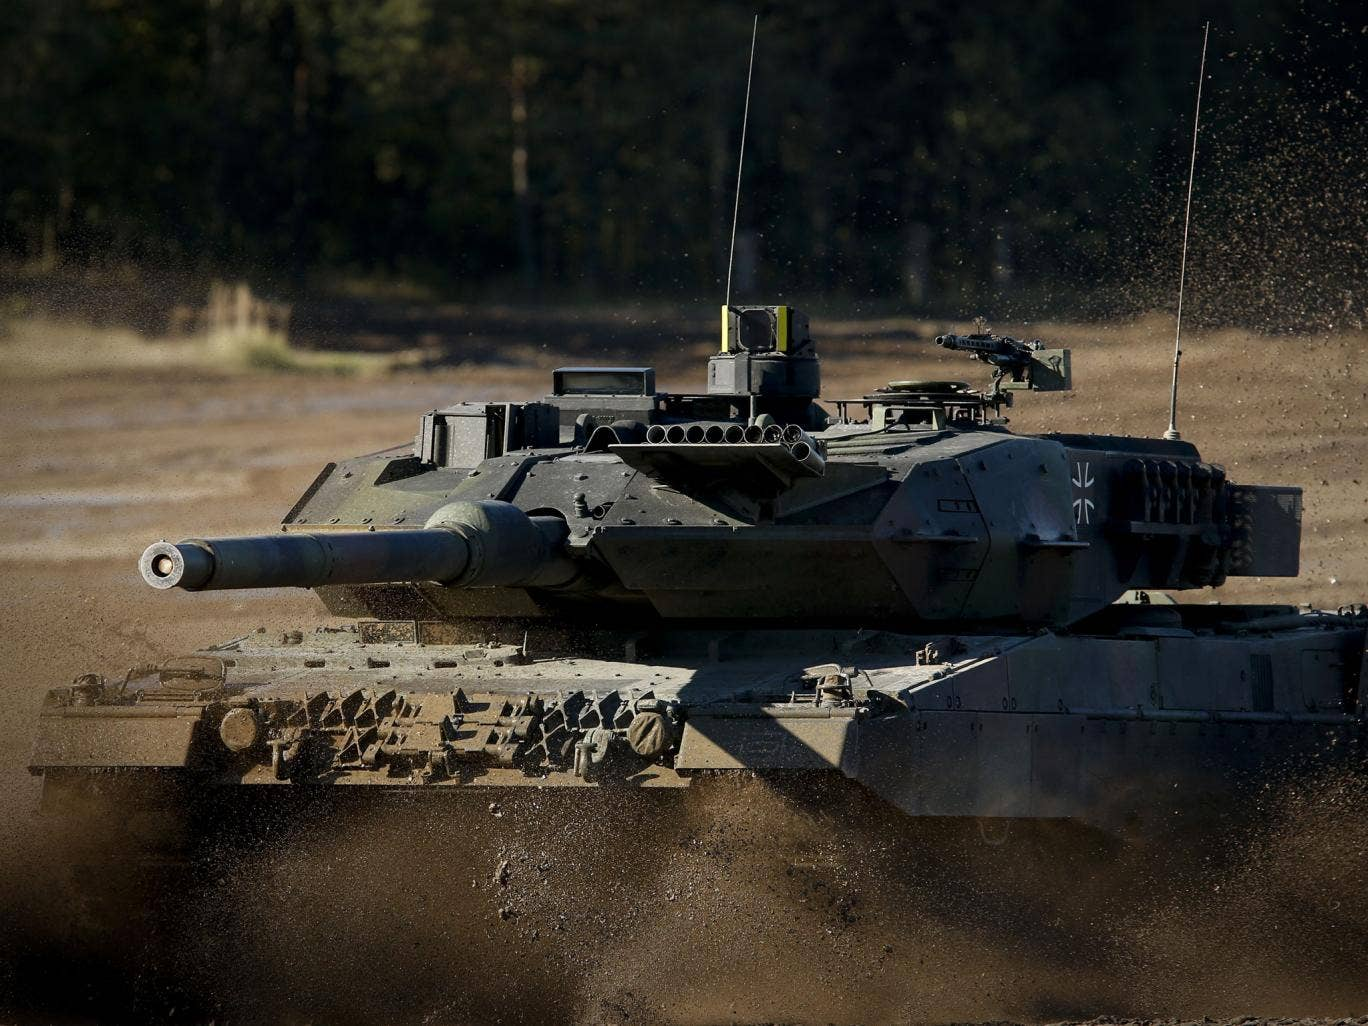 A Leopard 2 tank. A Greek defence official is said to have been bribed to order 170 of them